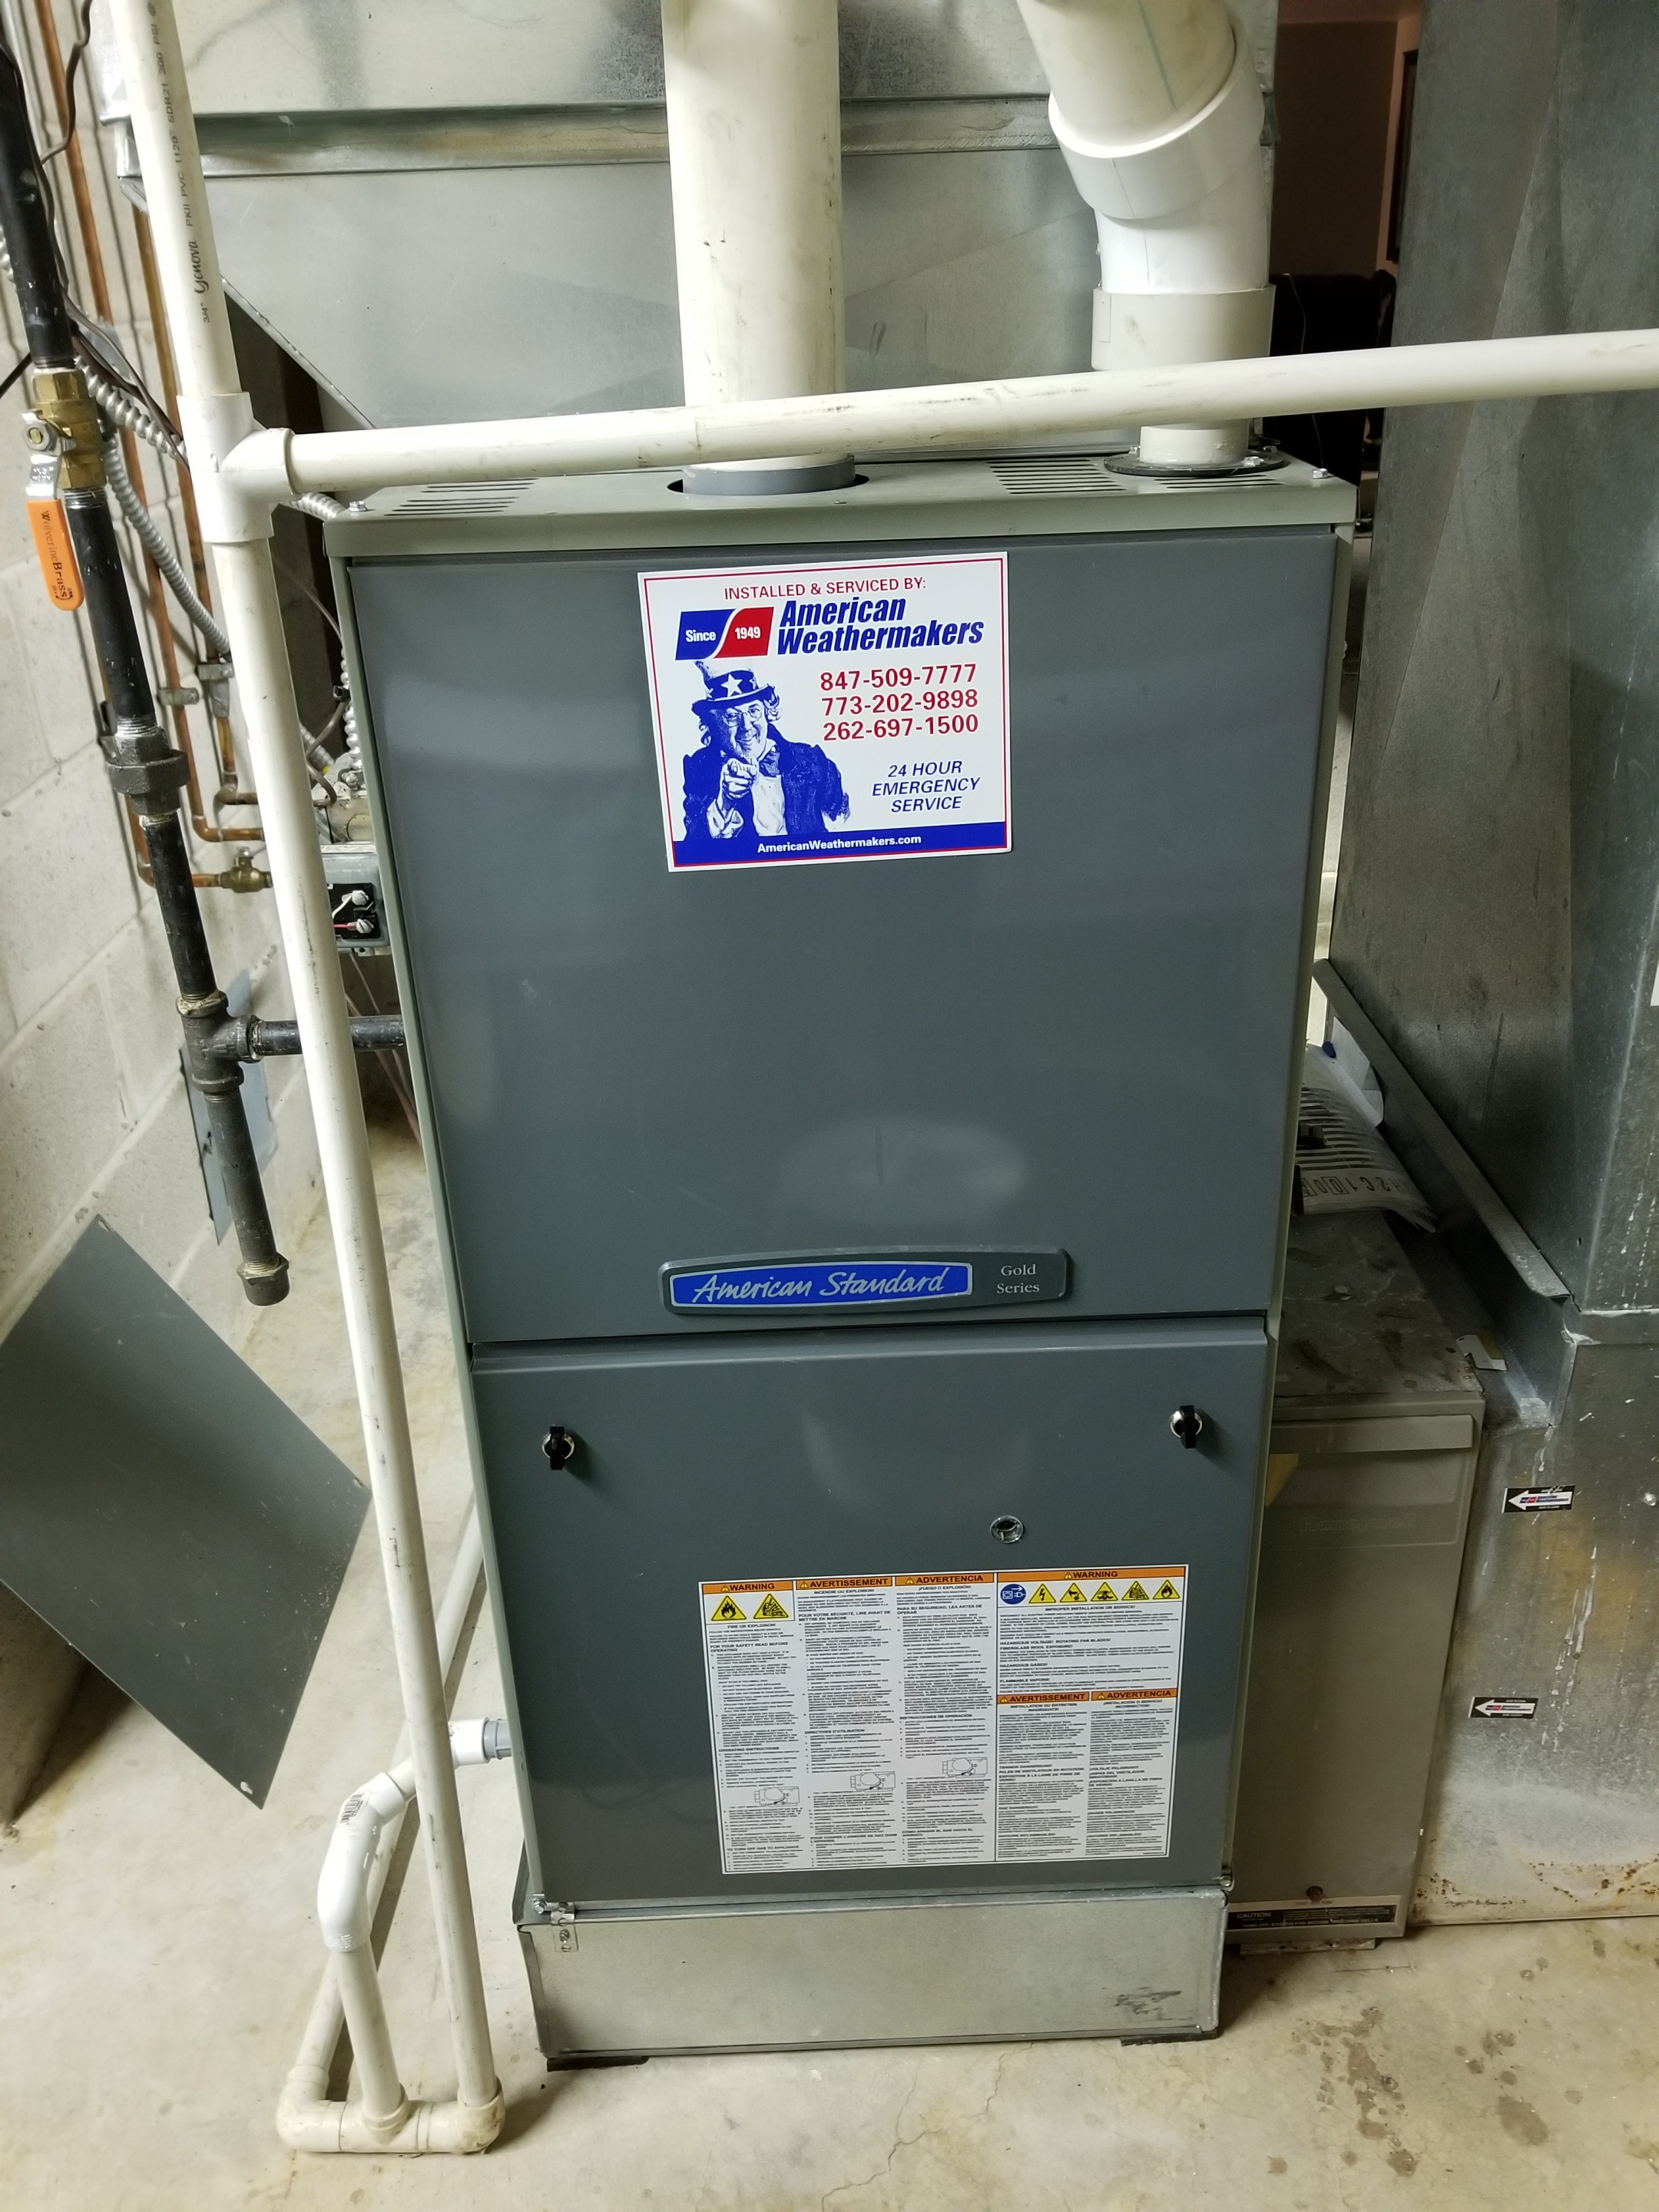 Performed annual maintenance on the American Standard furnace and Aprilaire humidifier and made adjustments to improve the overall efficiency and life expectancy of the equipment